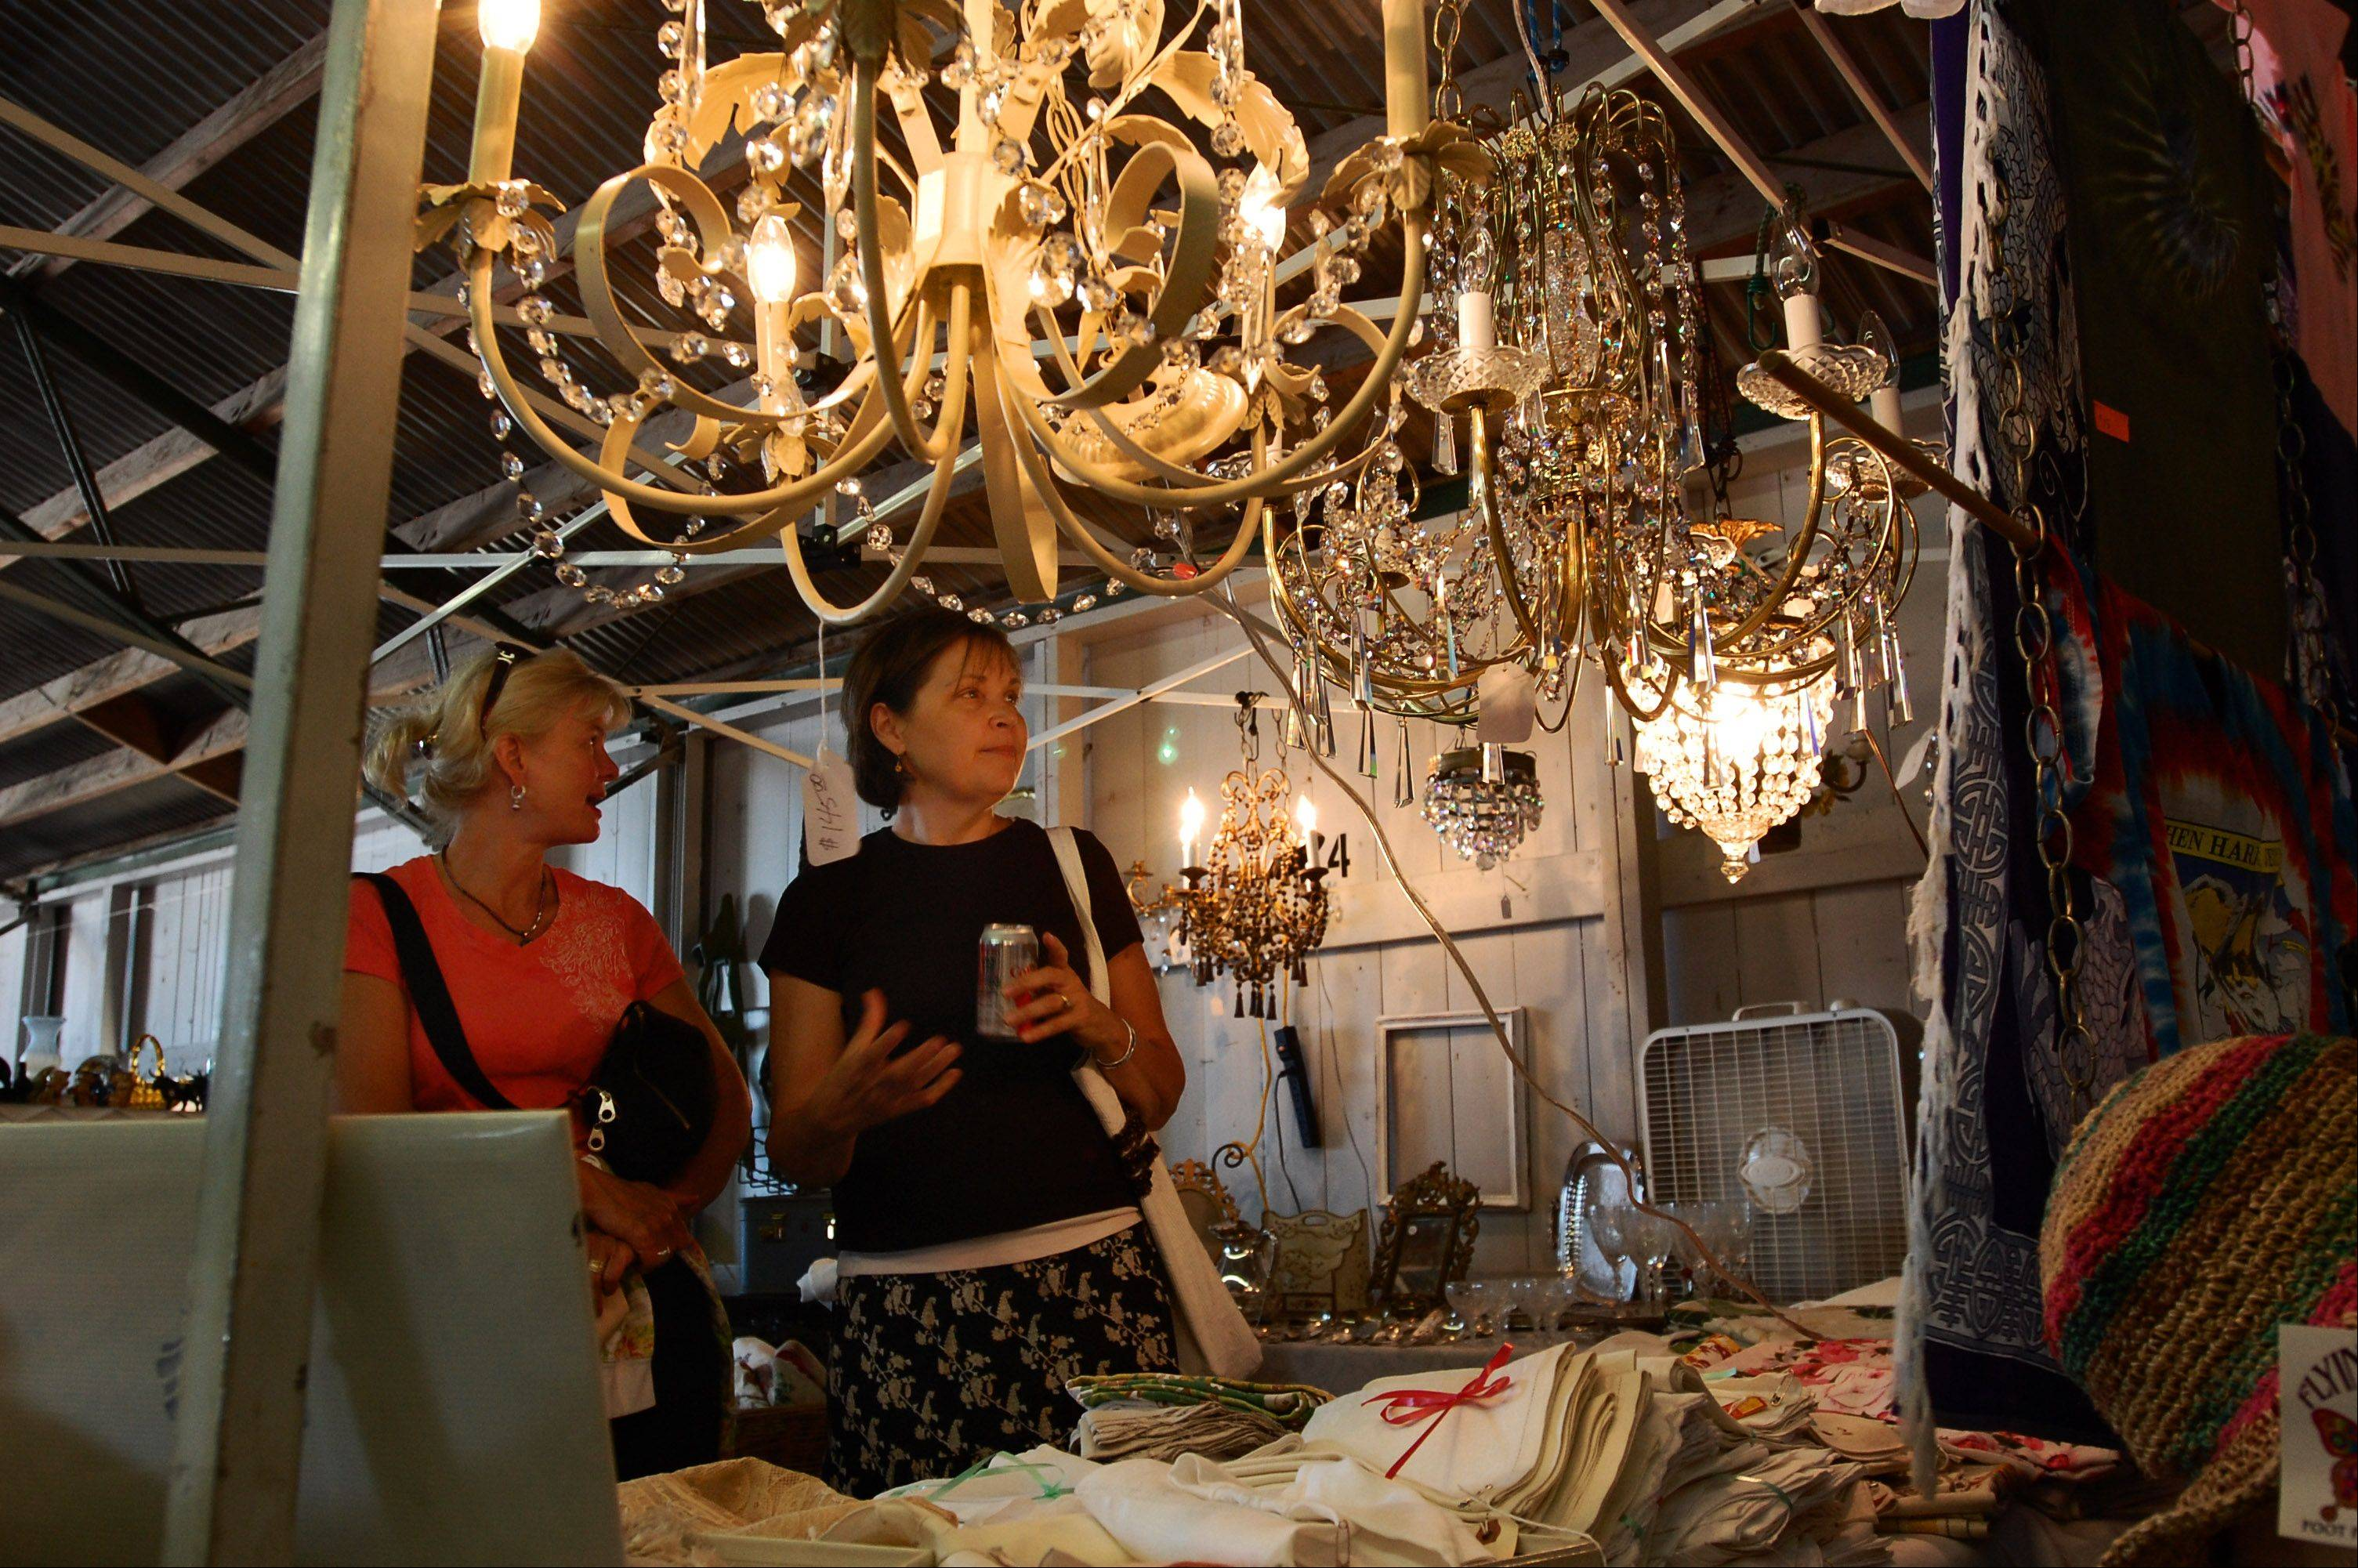 Marcia Macy and Karla Hogan, of Wheaton, look over the chandeliers at seller Dan Costantino's table Sunday at the The Kane County Flea Market. The monthly St. Charles flea market celebrates its 40th year this summer.